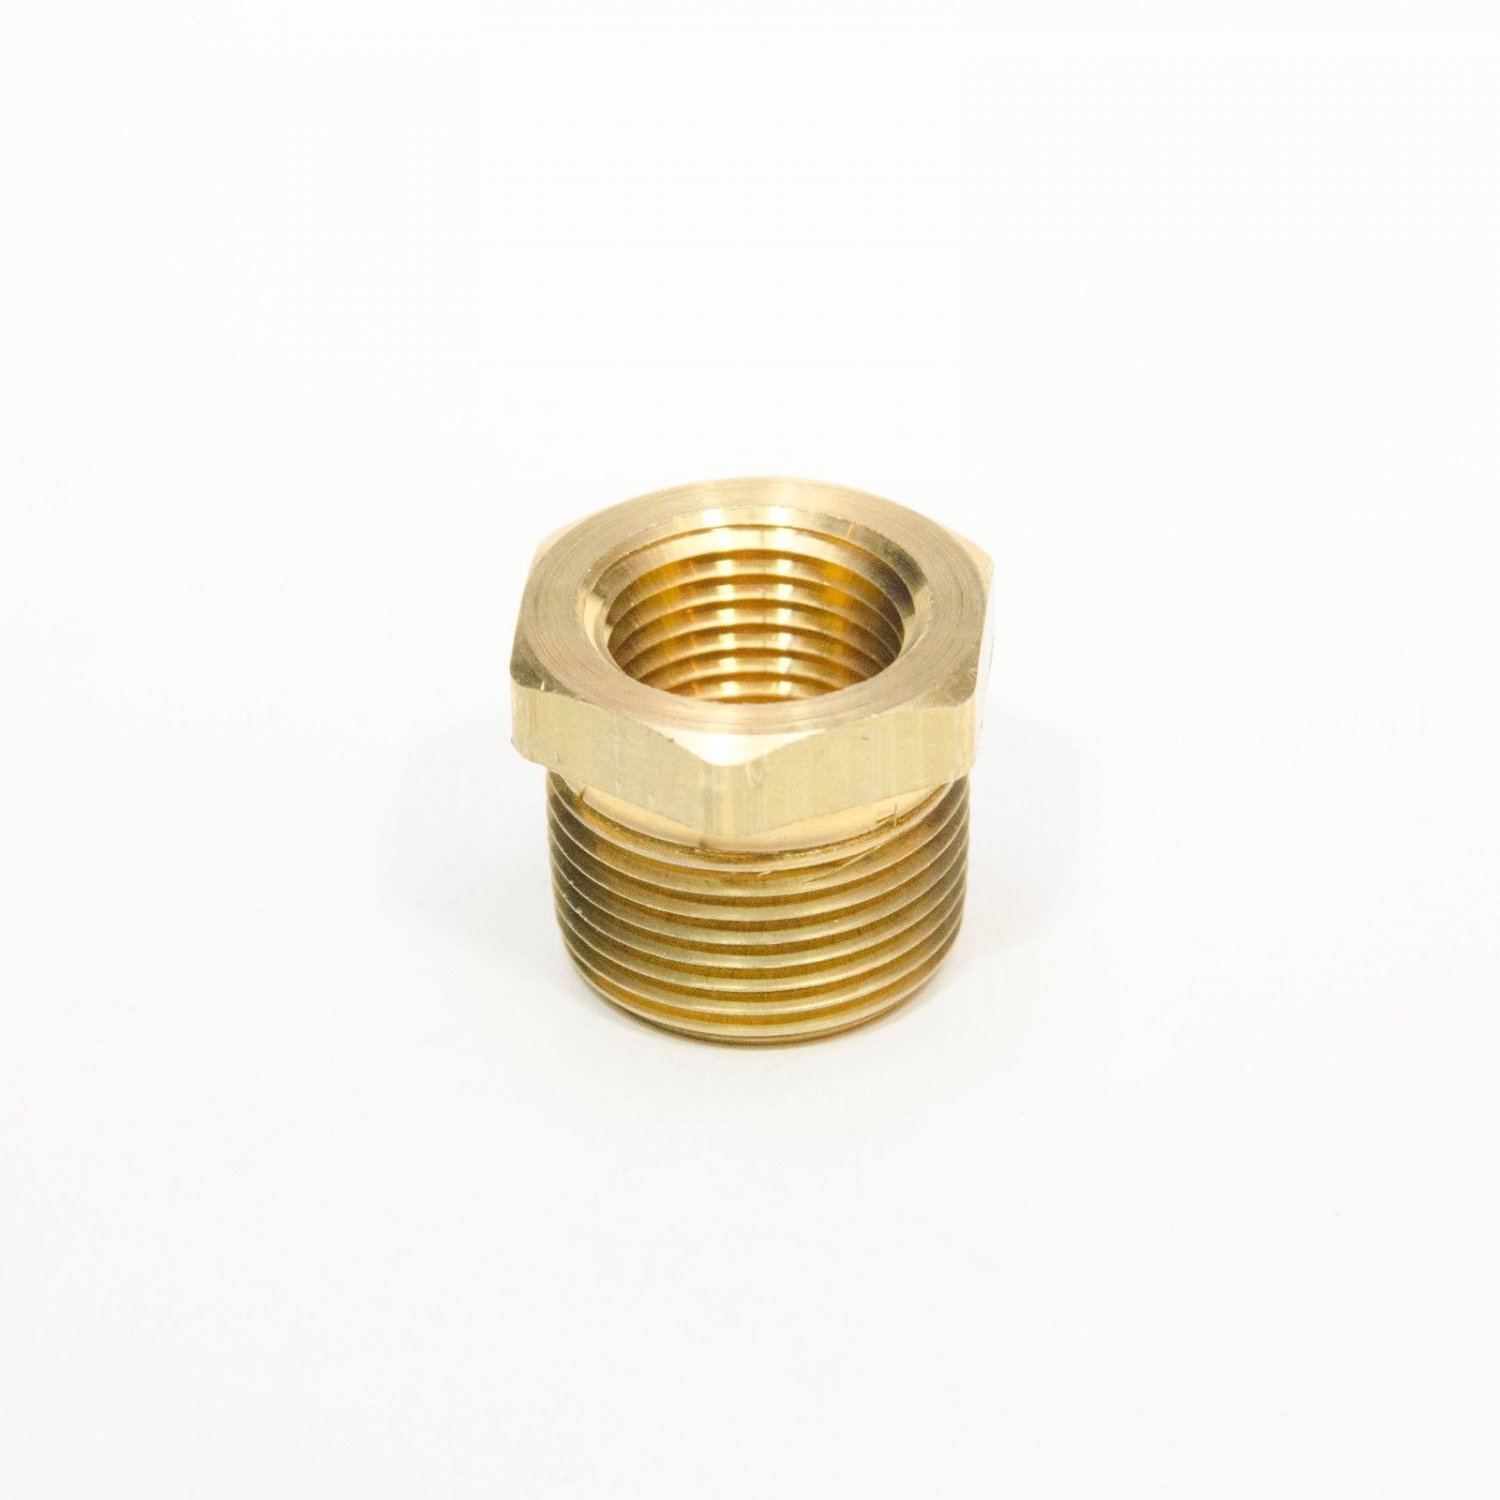 Brass Reducer bushing adapter 3/4 NPT Male x 1/2 NPT Female FasParts